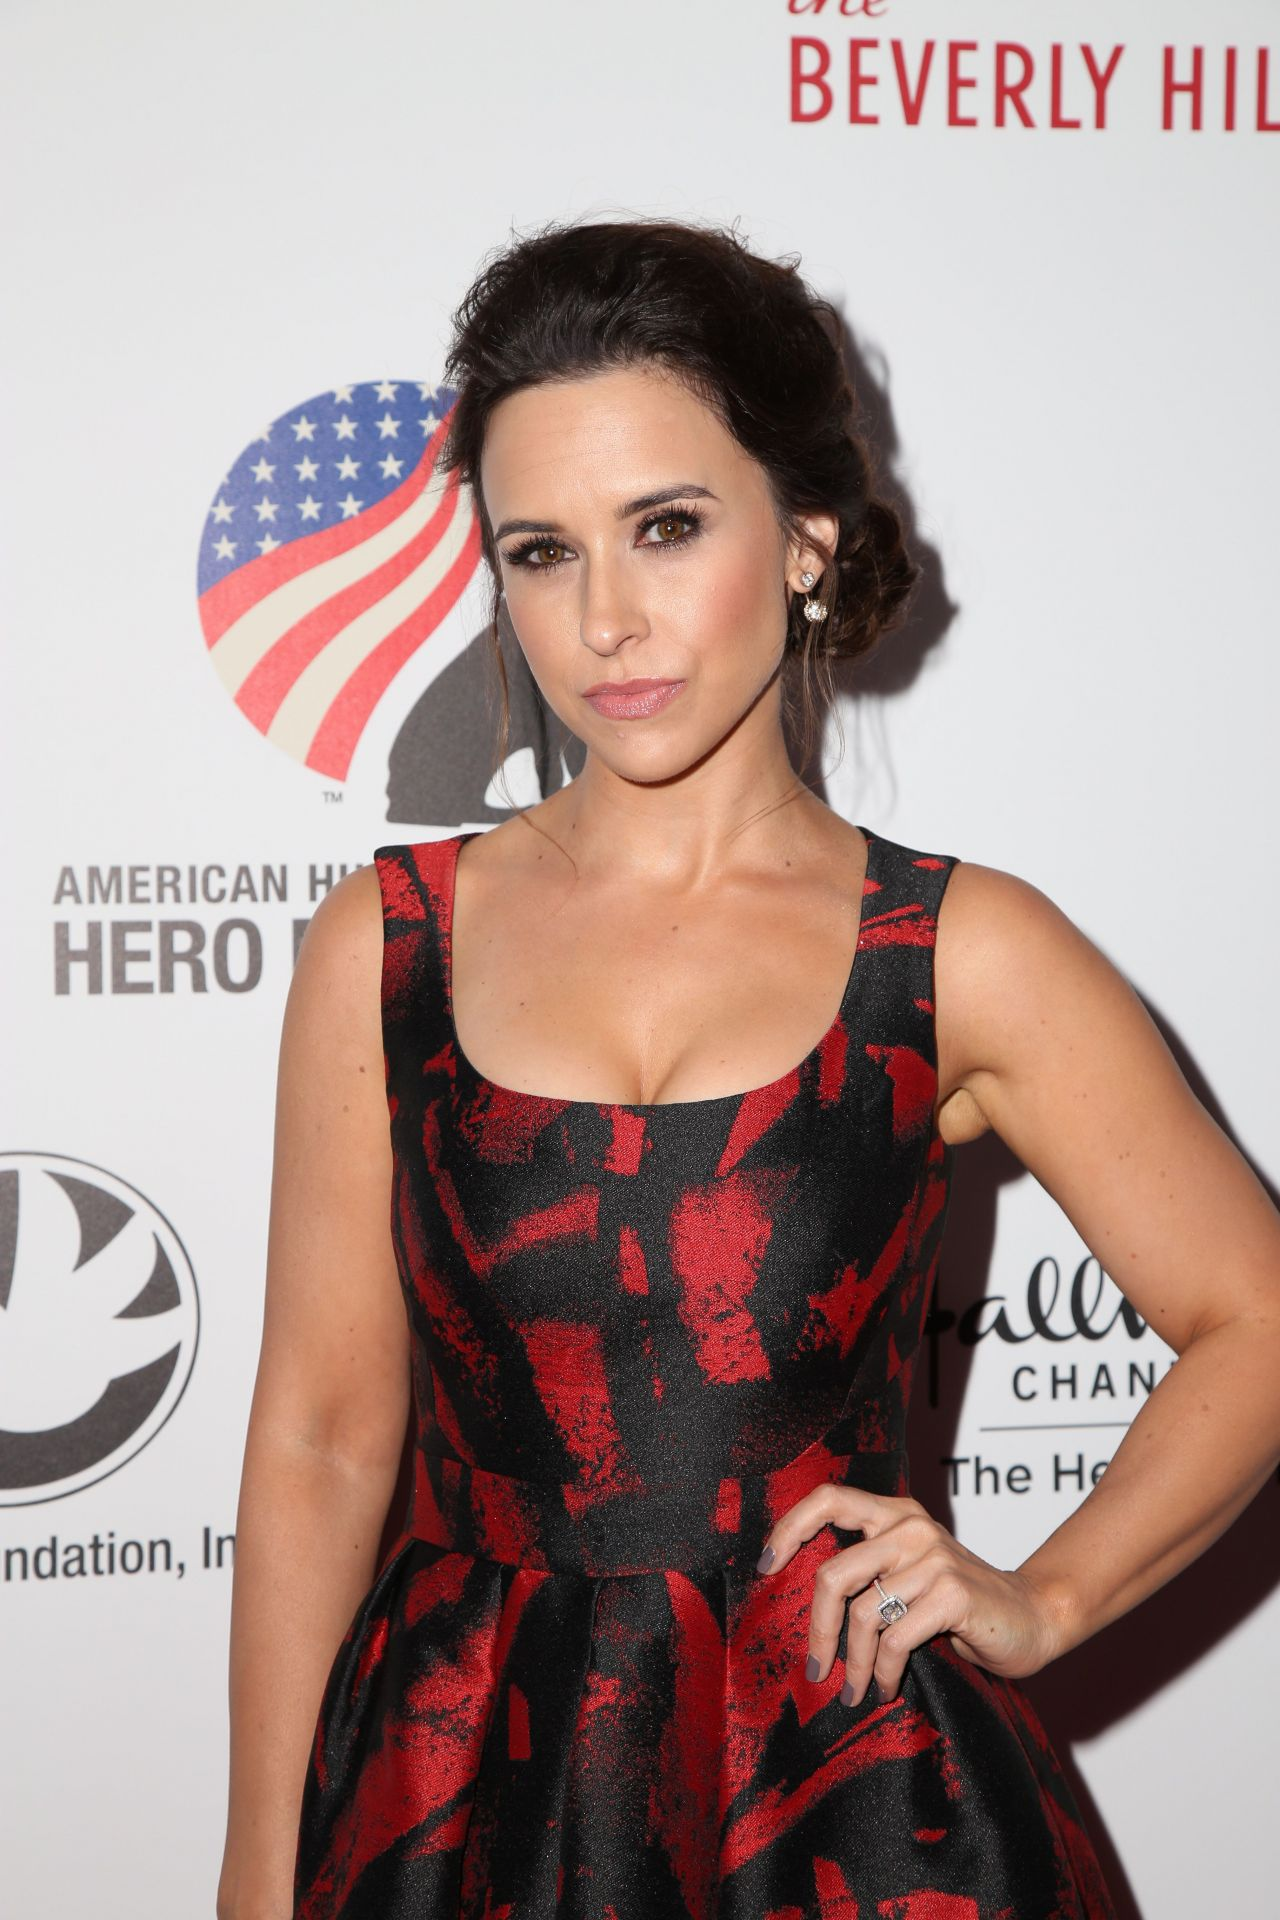 lacey chabert husbandlacey chabert instagram, lacey chabert lost in space, lacey chabert imdb, lacey chabert 1998, lacey chabert wikipedia, lacey chabert family guy, lacey chabert meg griffin, lacey chabert brennan elliott, lacey chabert 2016, lacey chabert filmography, lacey chabert a royal christmas, lacey chabert photoshoot, lacey chabert, lacey chabert husband, lacey chabert hallmark movies, lacey chabert bikini, lacey chabert wiki, lacey chabert 2015, party of five lacey chabert, lacey chabert movie list